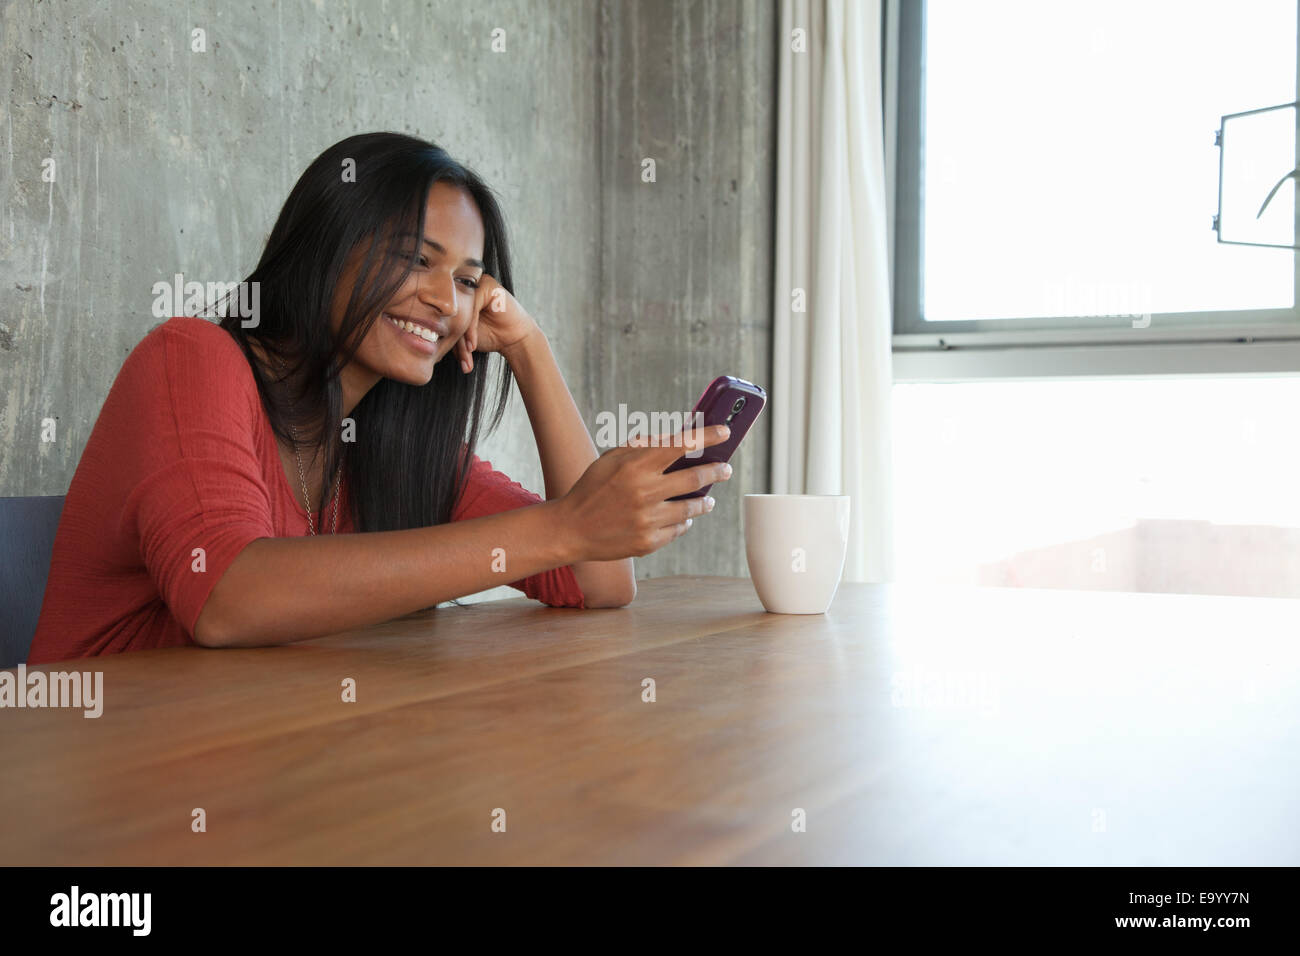 Woman using smartphone at home - Stock Image